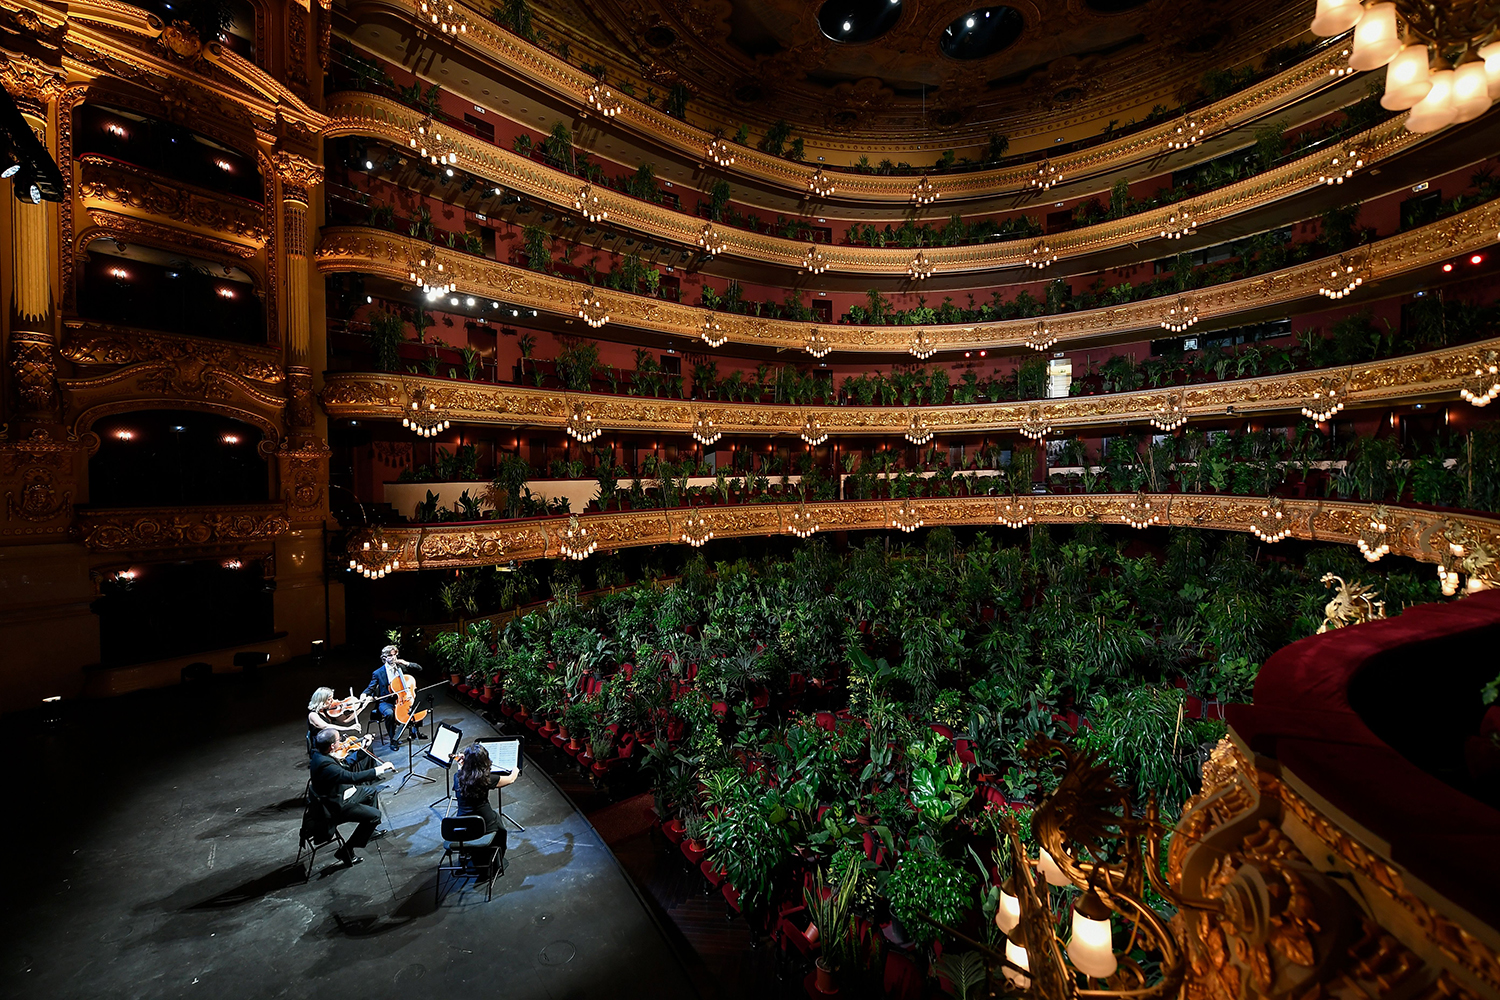 The perfect audience. The UceLi Quartet performs for an audience of plants during a concert at the Gran Teatre del Liceu in Barcelona on June 22. LLUIS GENE/AFP via Getty Images